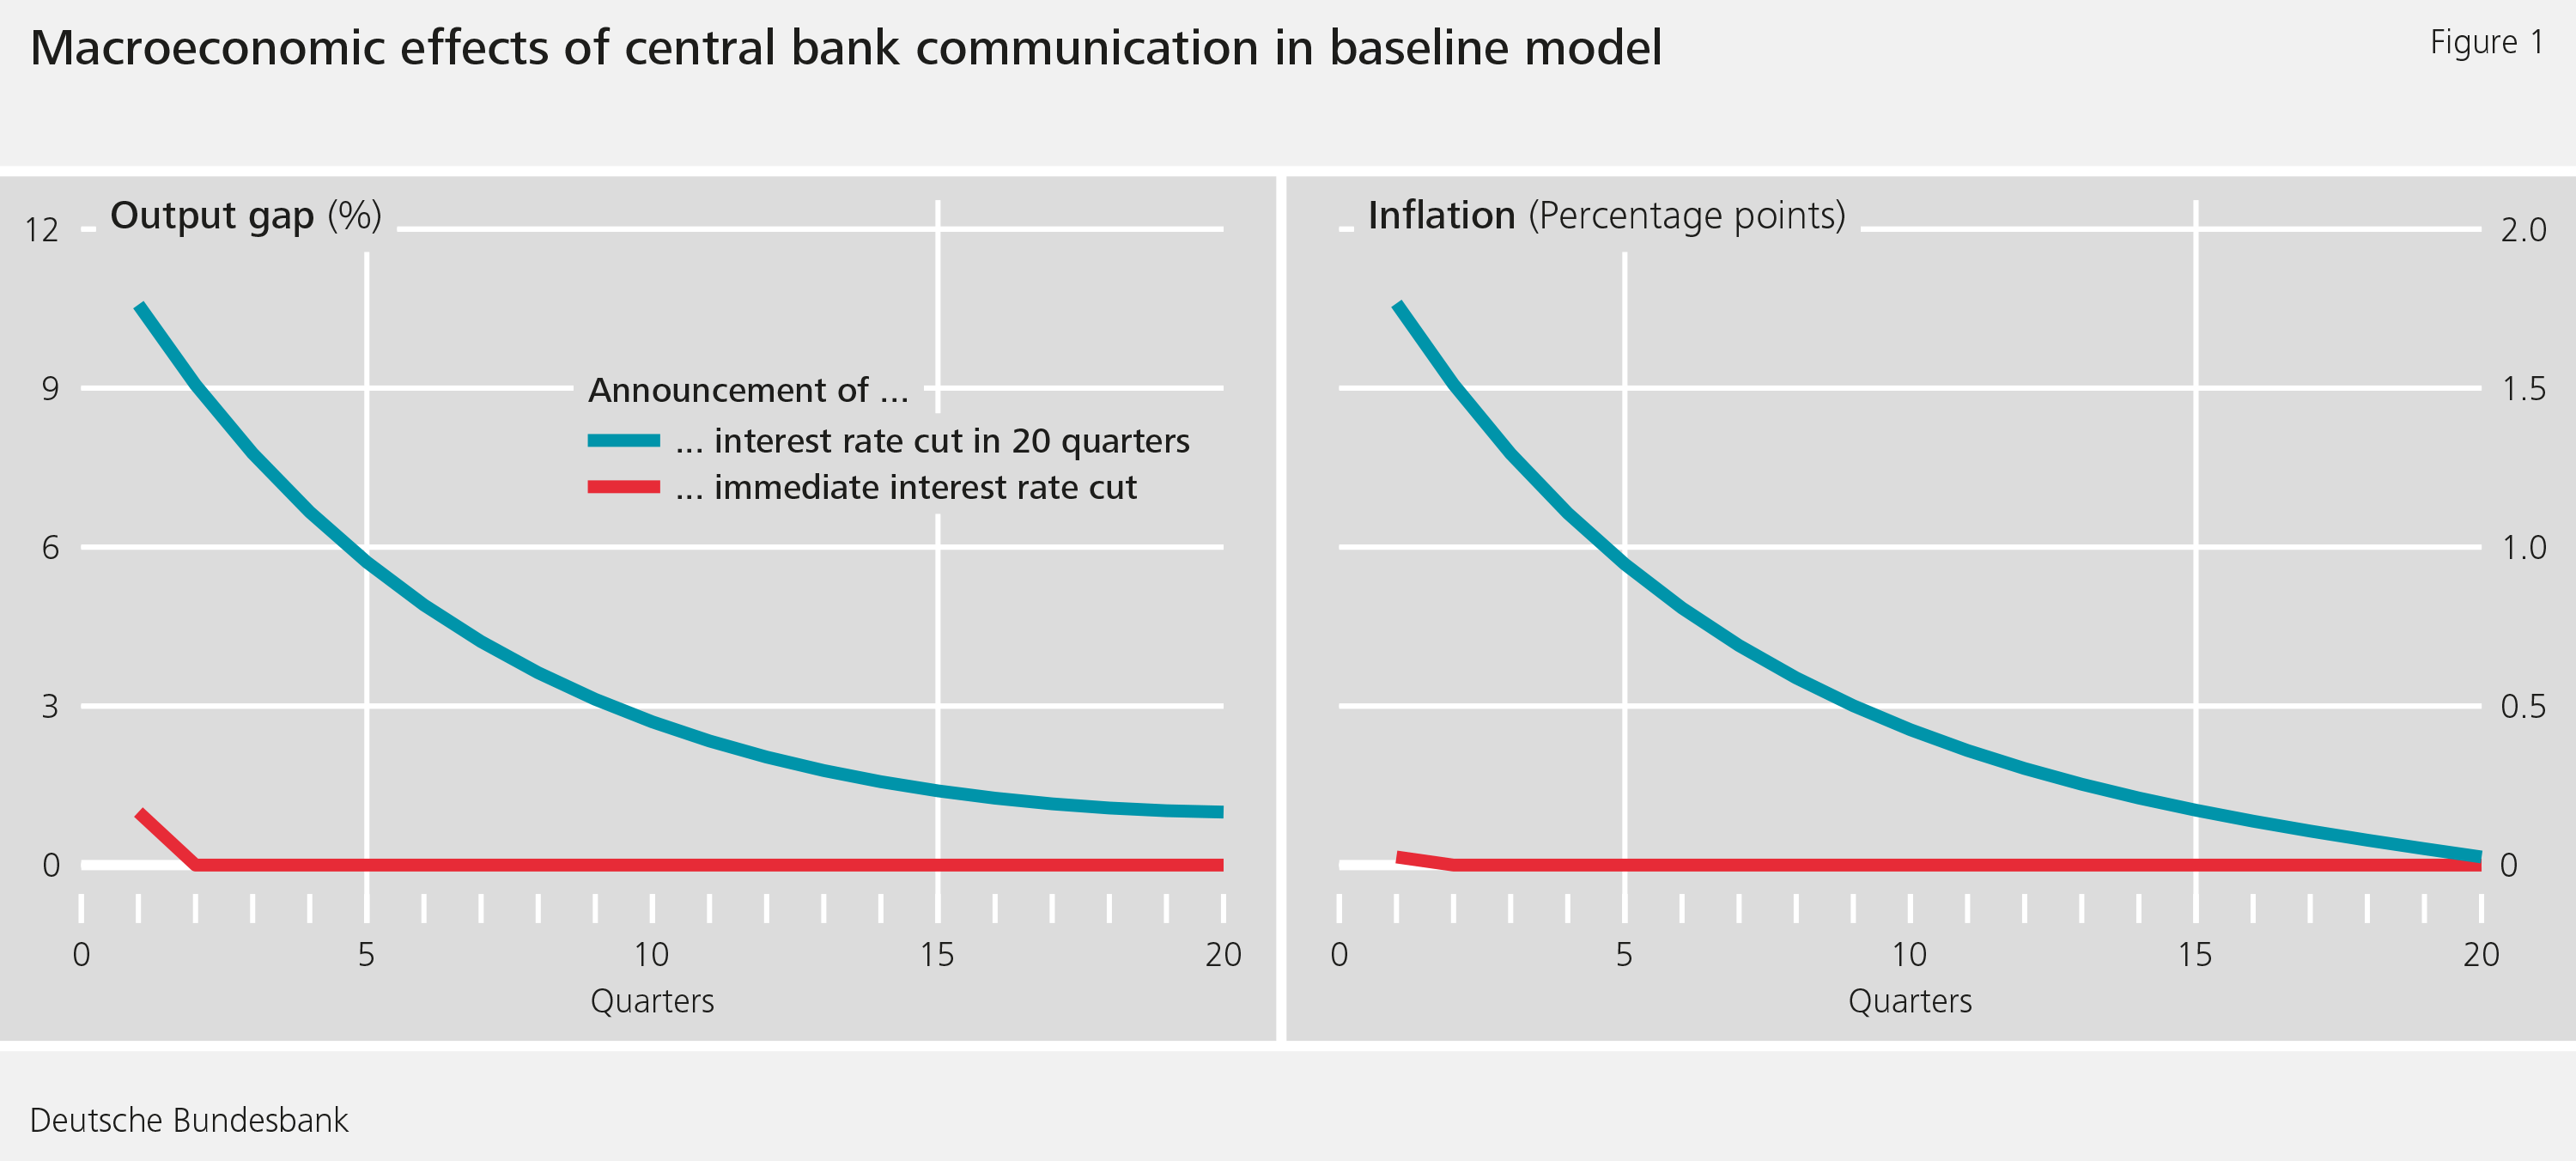 Figure 1: Macroeconomic effects of central bank communication in baseline model